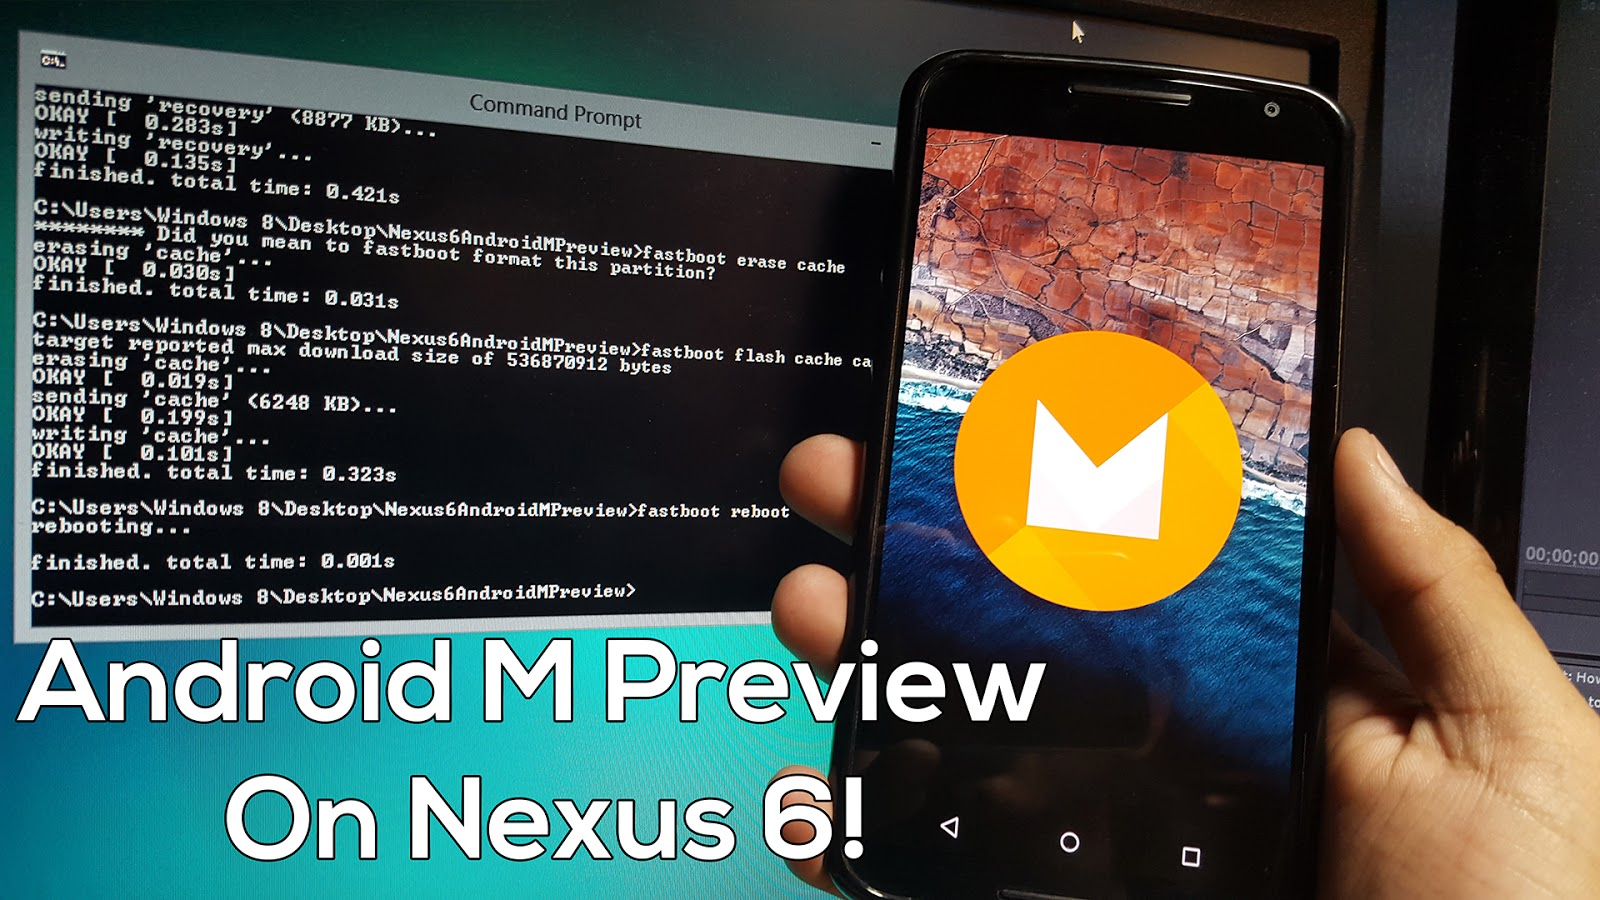 How to Install Android M Preview on Nexus 6! ~ AndroidRootz